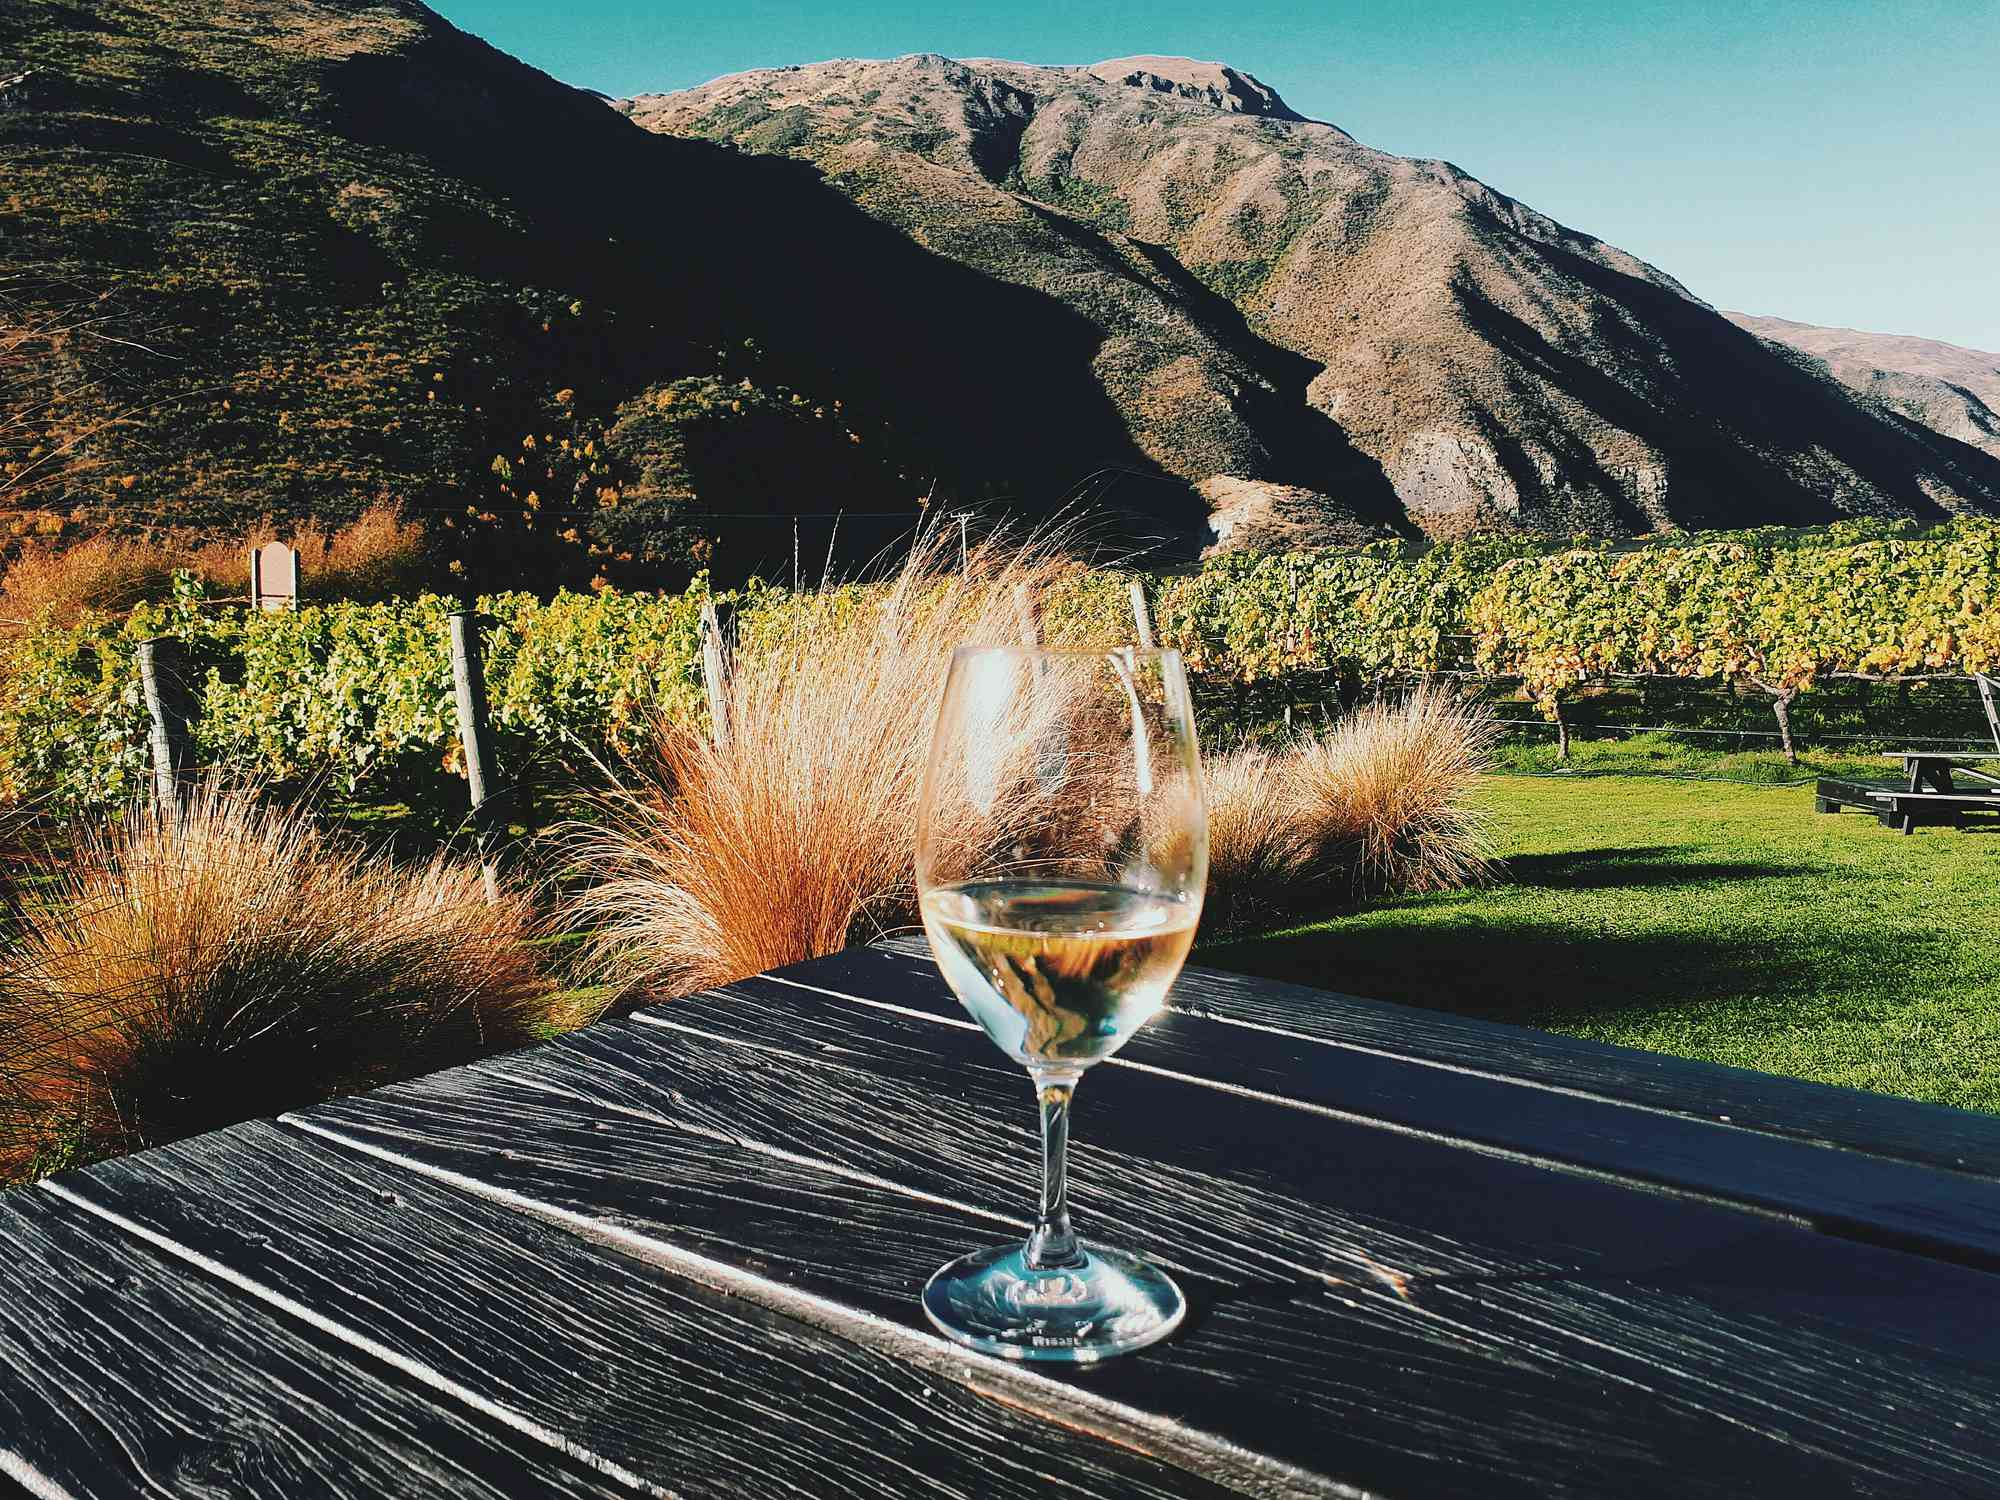 Glass of wine with picturesque vineyard in background